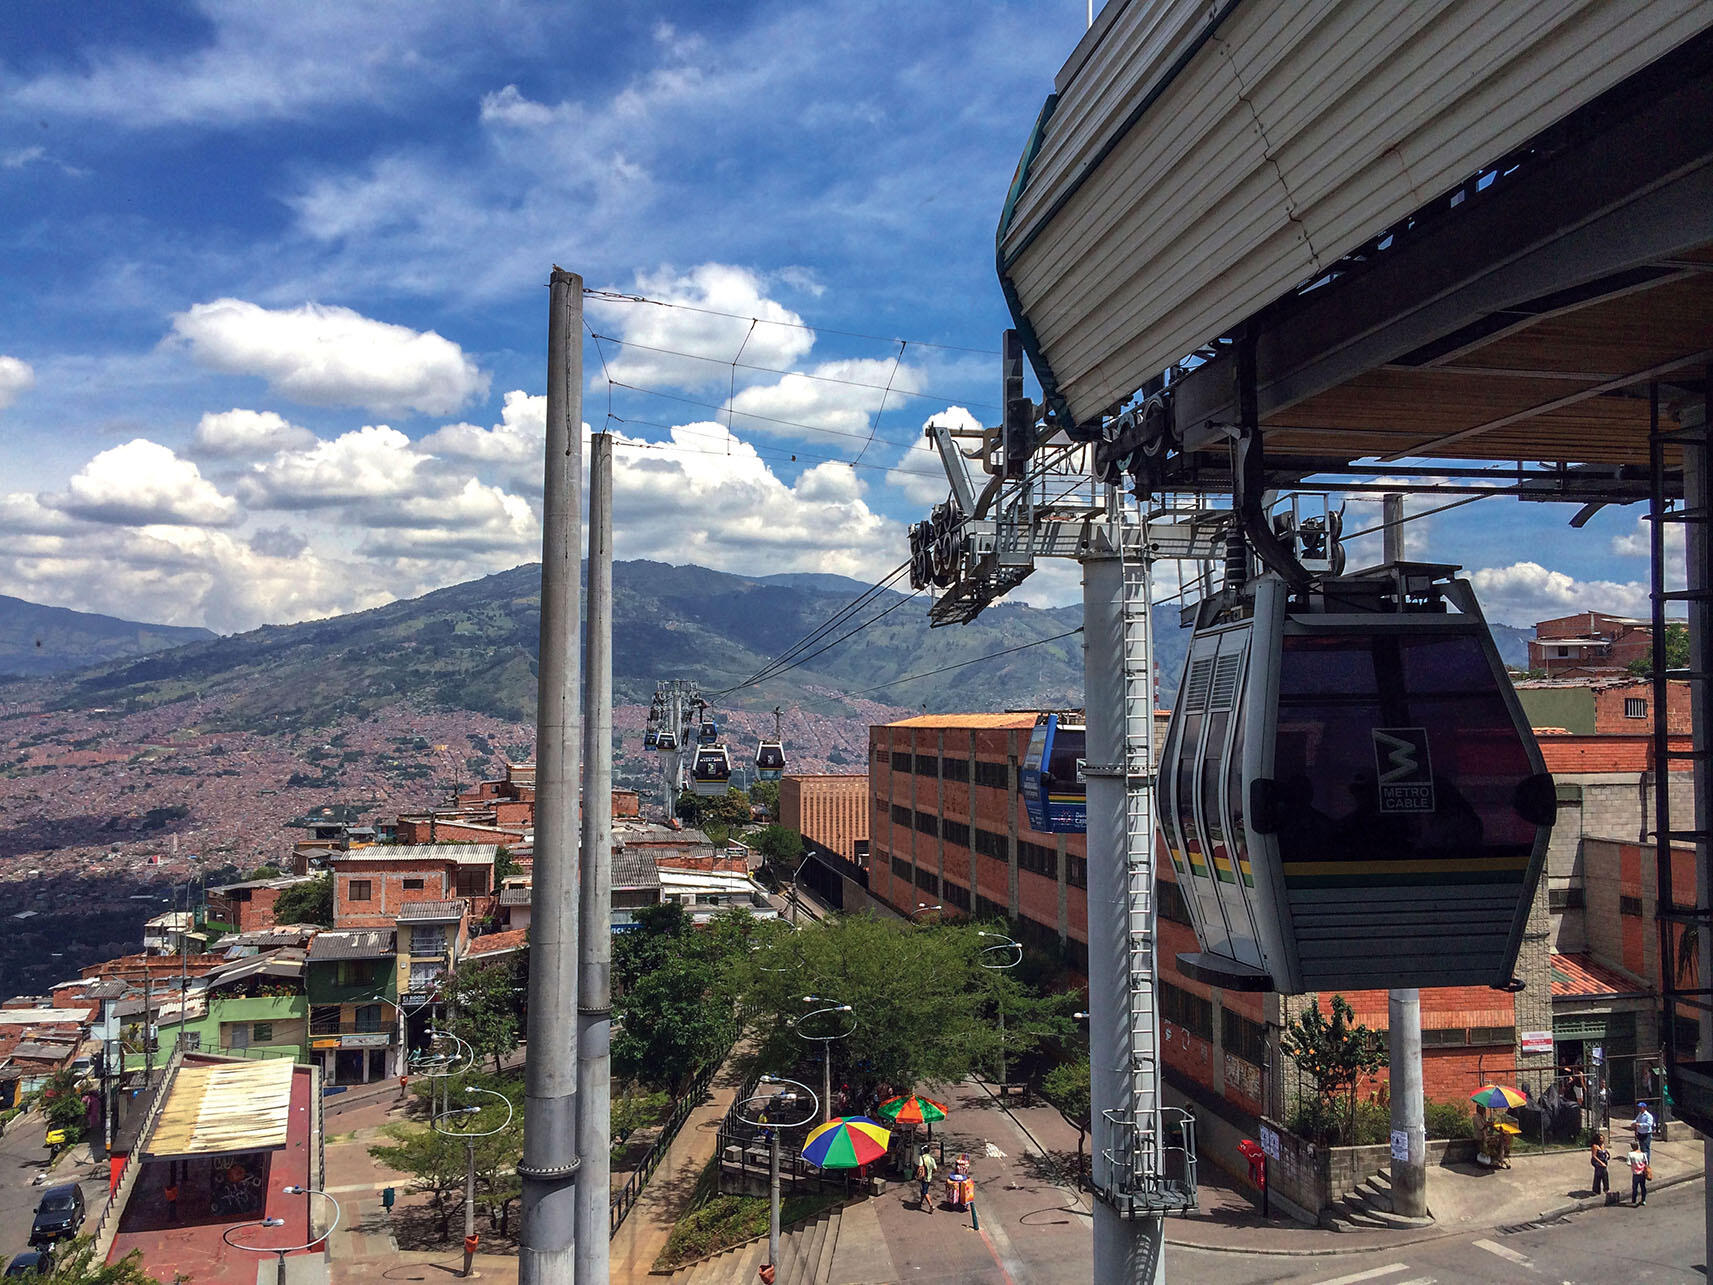 The tramway and a station of Medellín's Metrocable, which links poor hillside communities with the urban center. (Photo by Alan.)